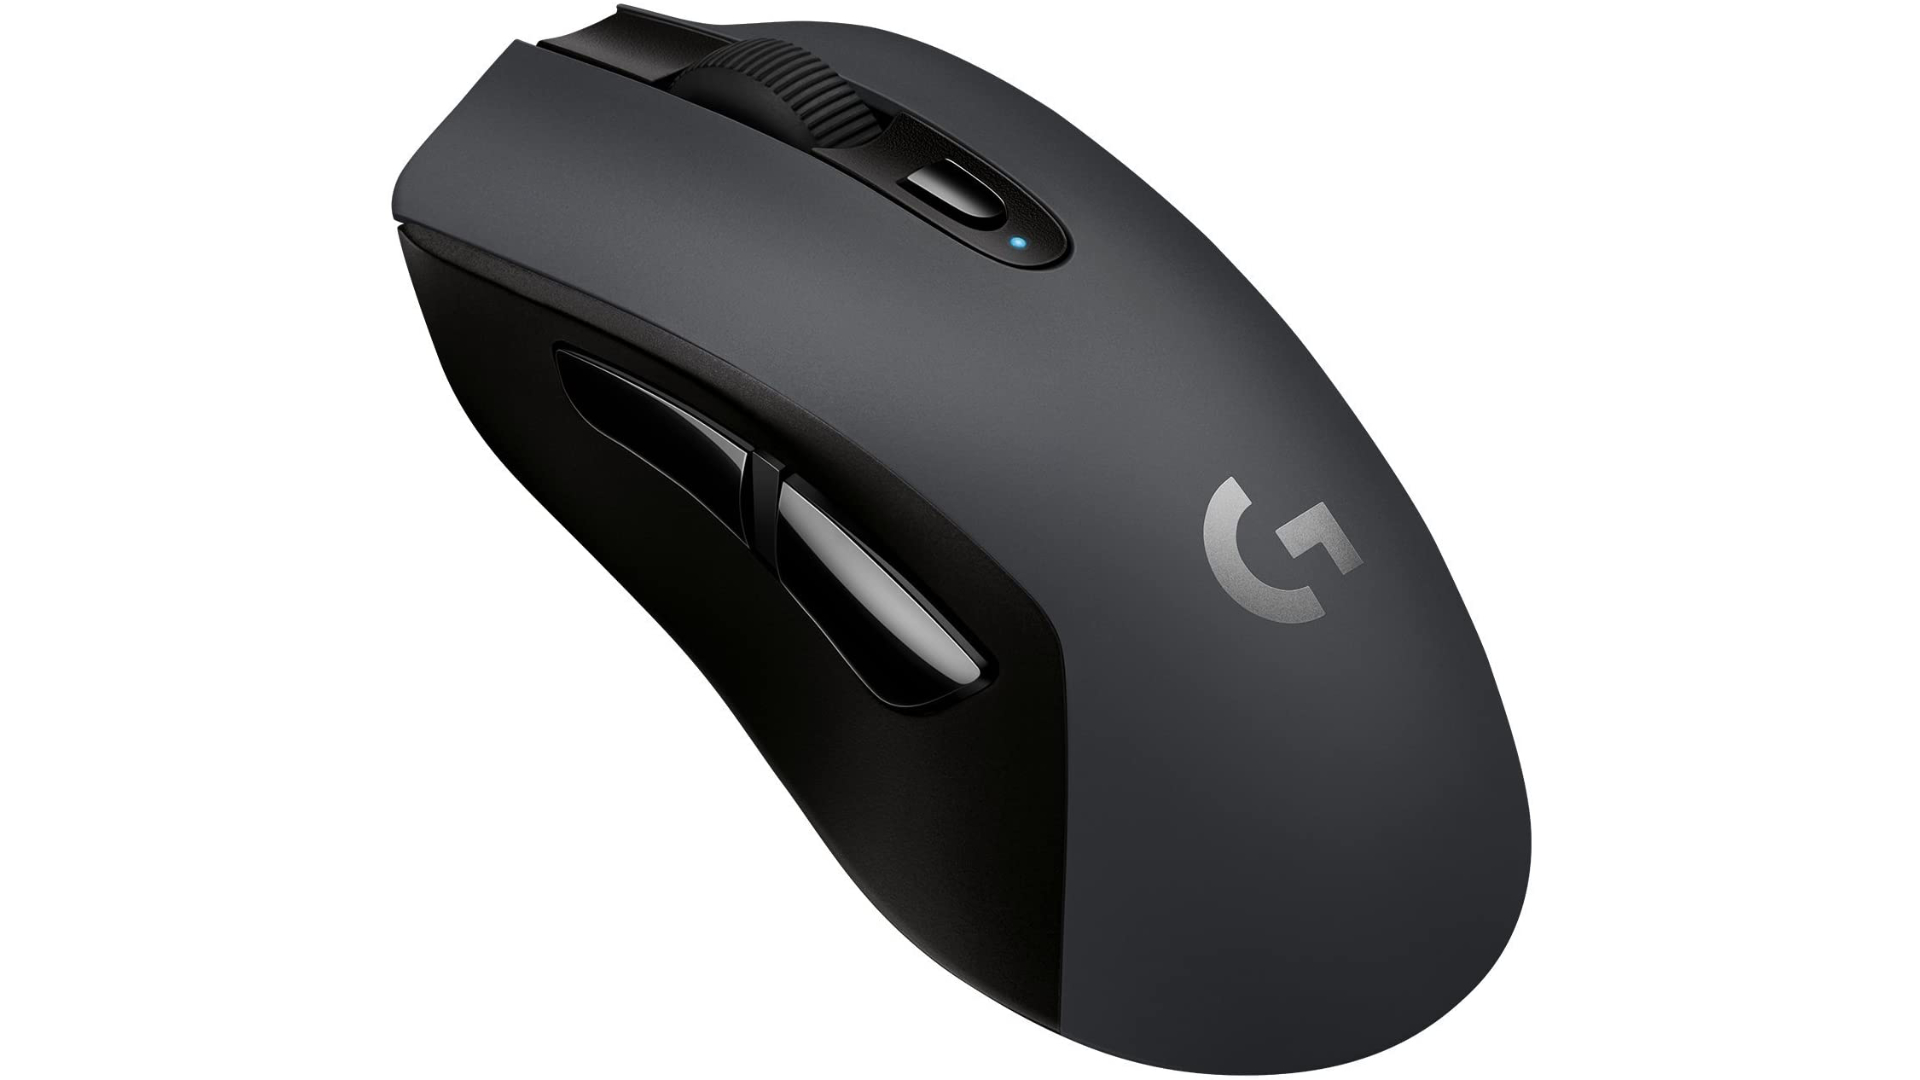 Logitech's wireless gaming mouse has a 500+ hour battery life and 37% discount